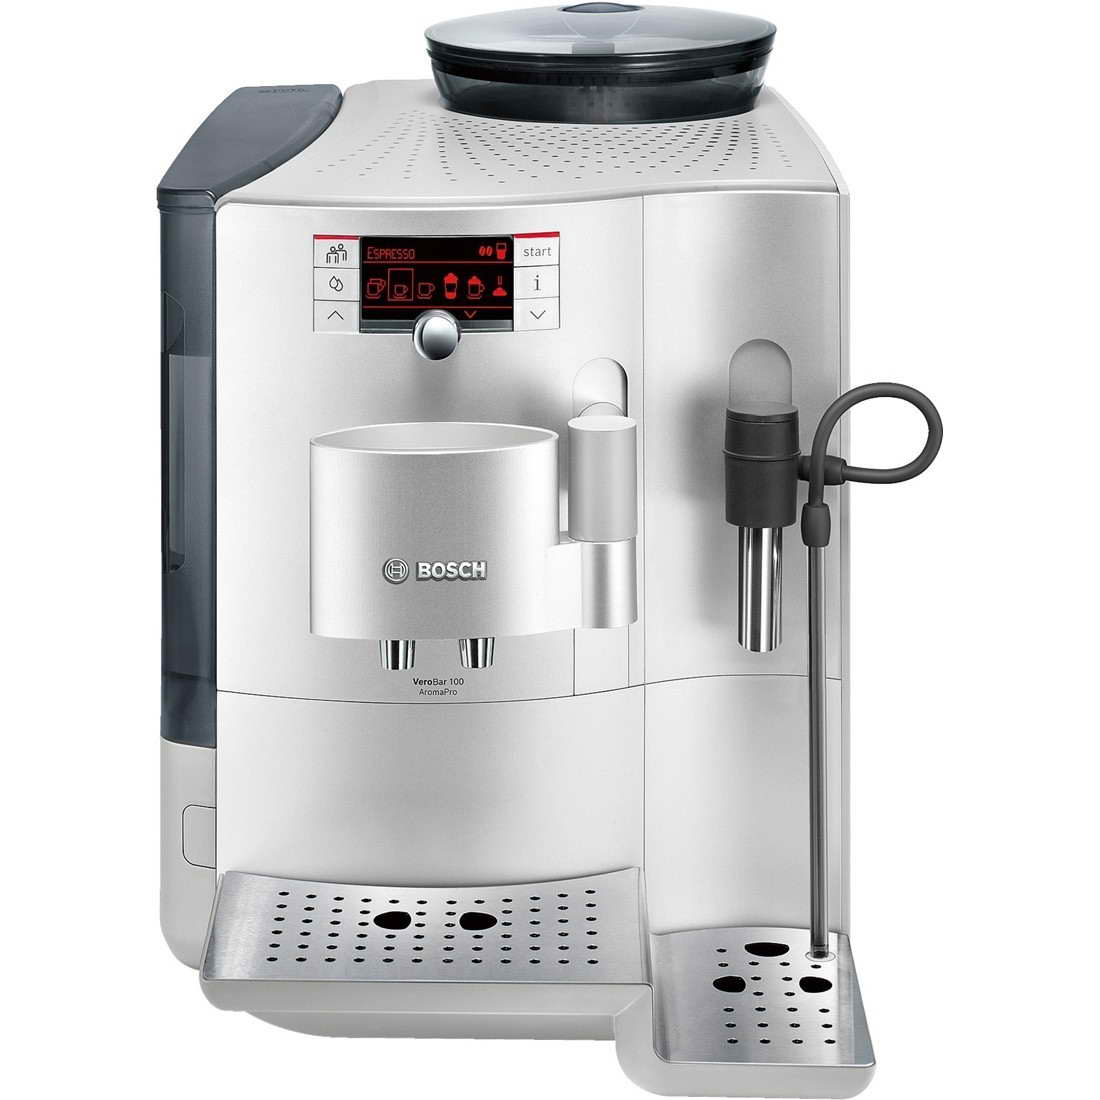 Bosch Bedienungsanleitung Bosch Verobar101 Bean To Cup Automatic Coffee Machine